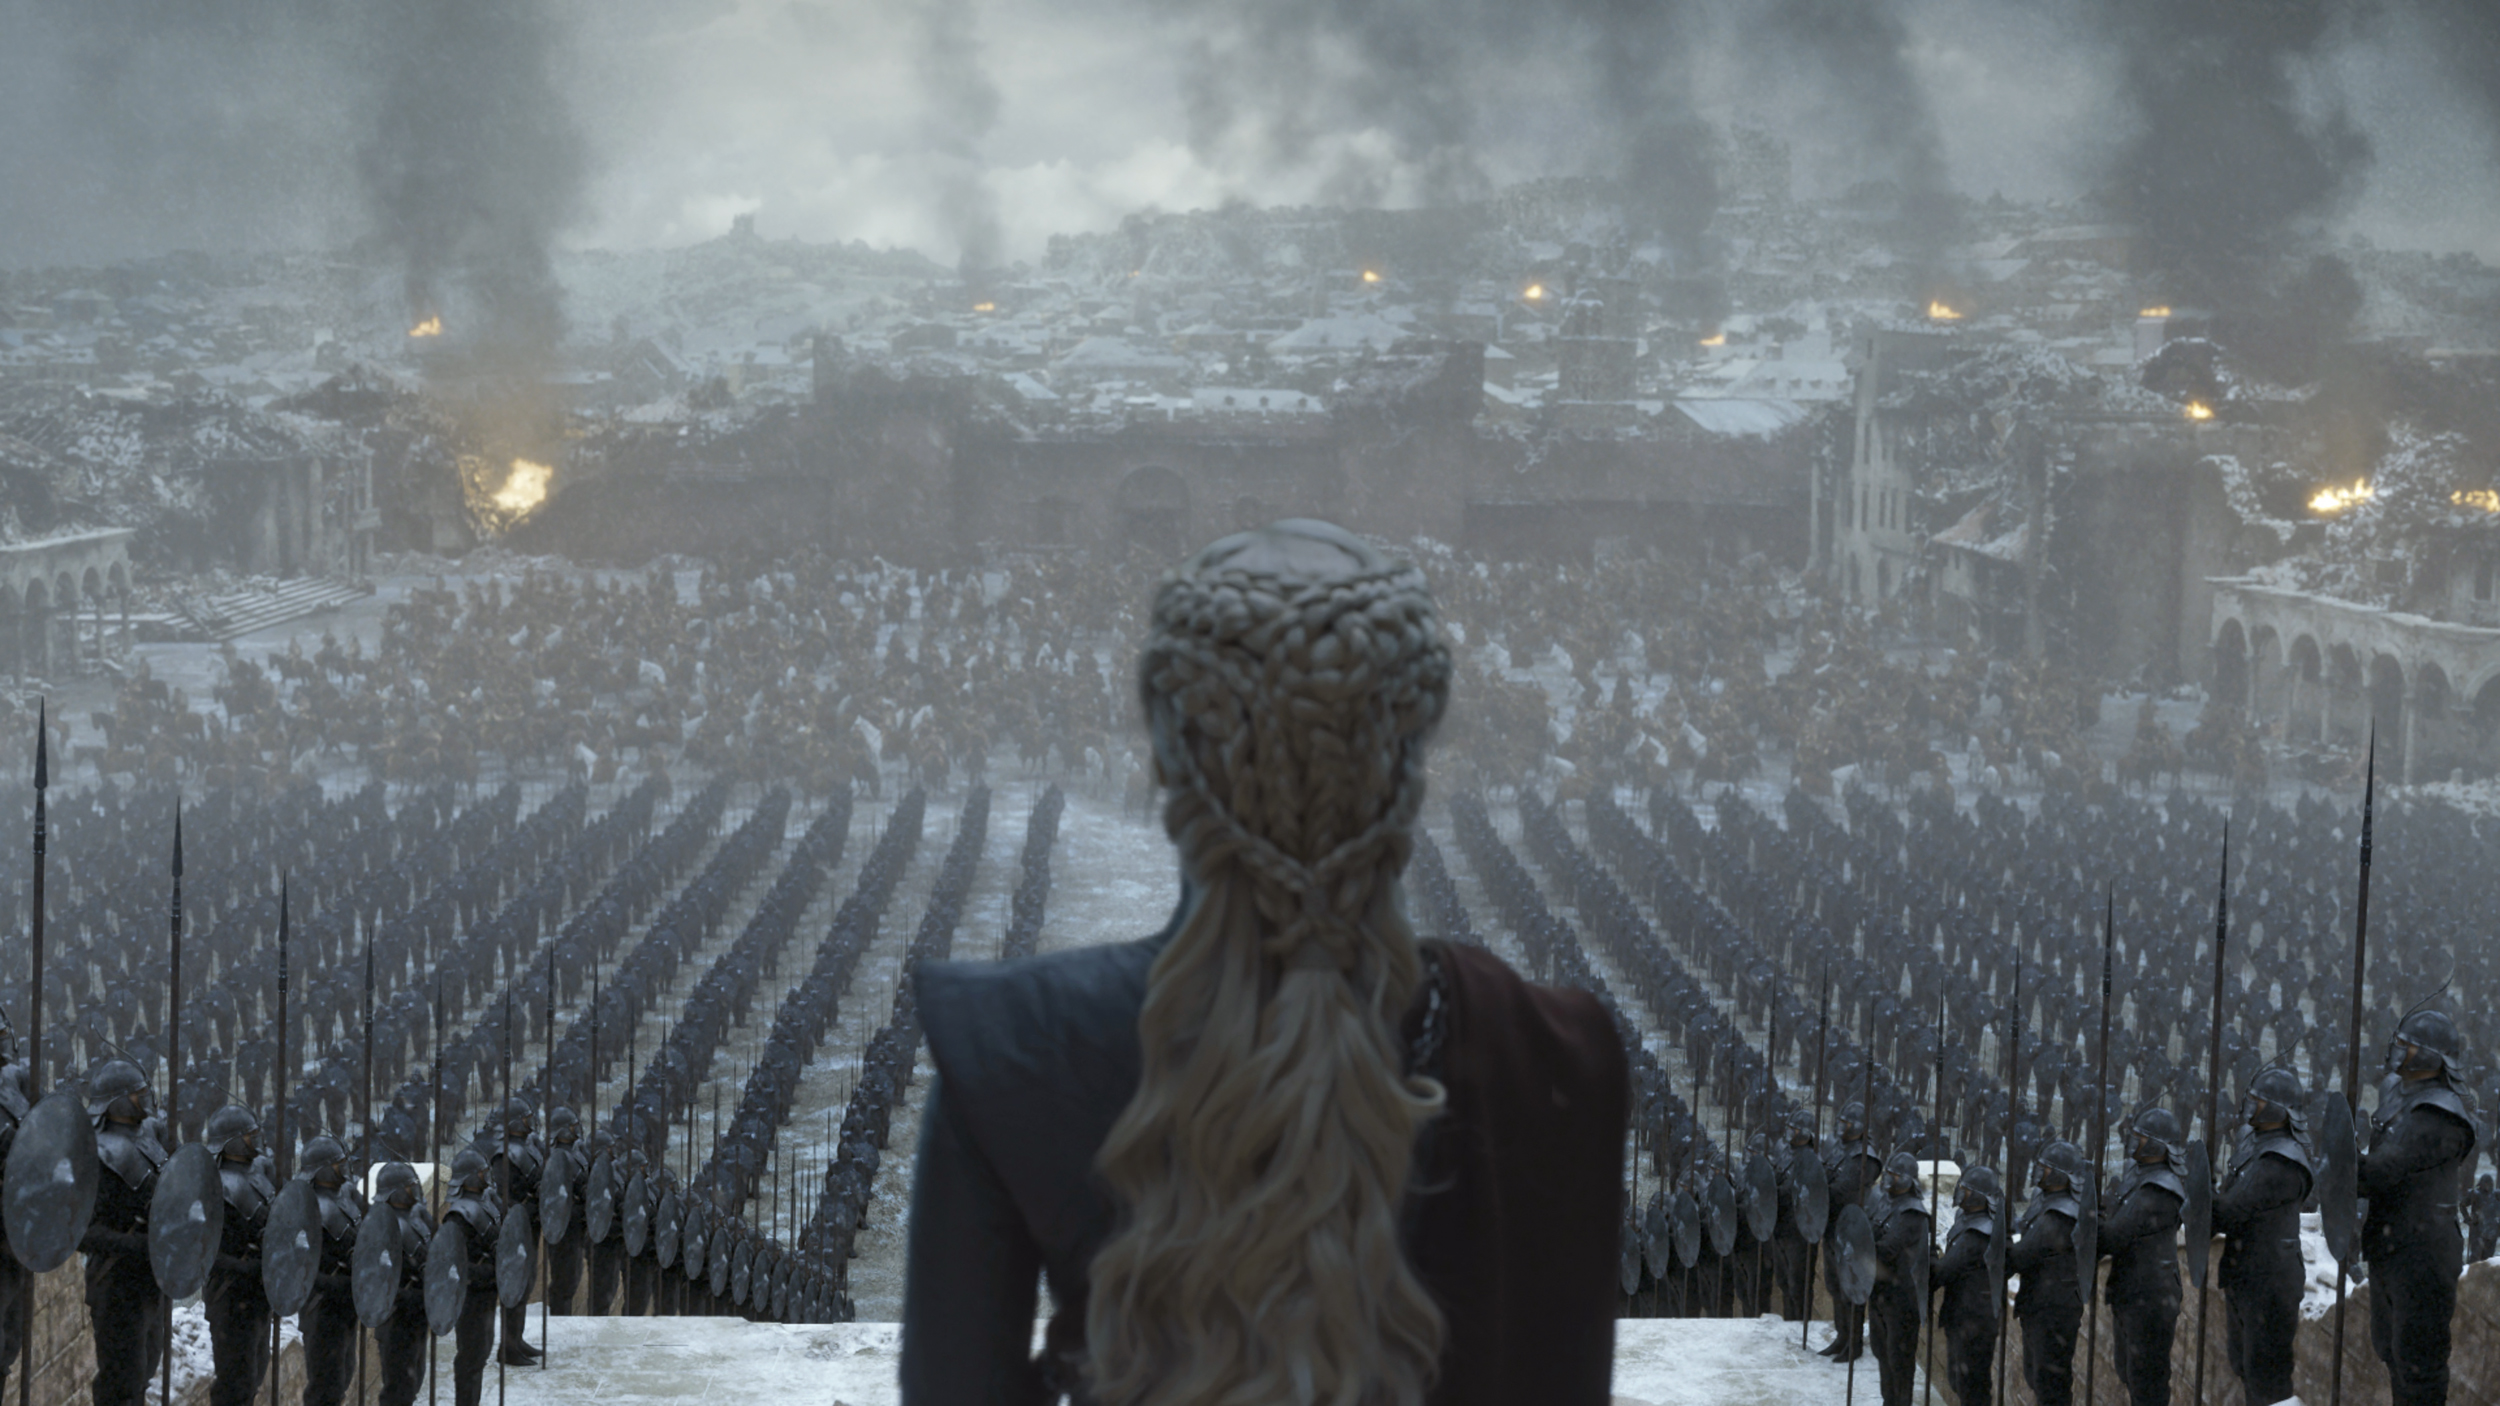 Game of Thrones' is gone, and so are some HBO subscribers